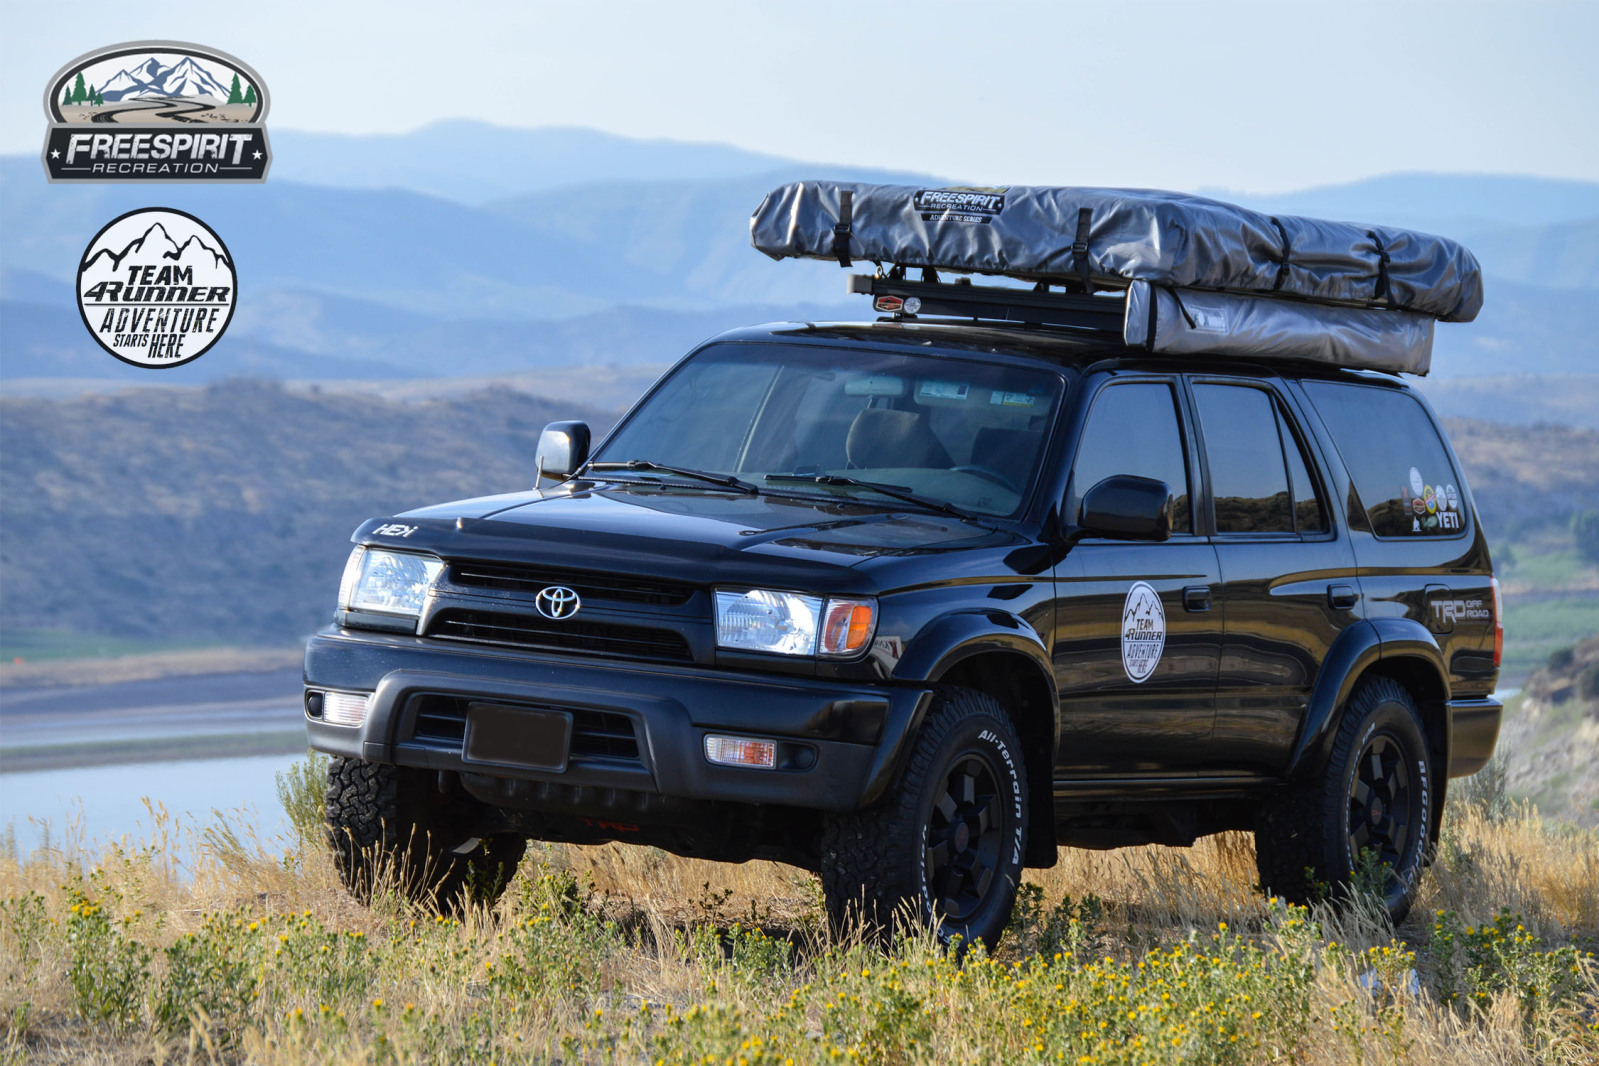 FreeSpirit Recreation ... & Freespirit Recreation Adventure Series Roof Top Tent | Team4runner